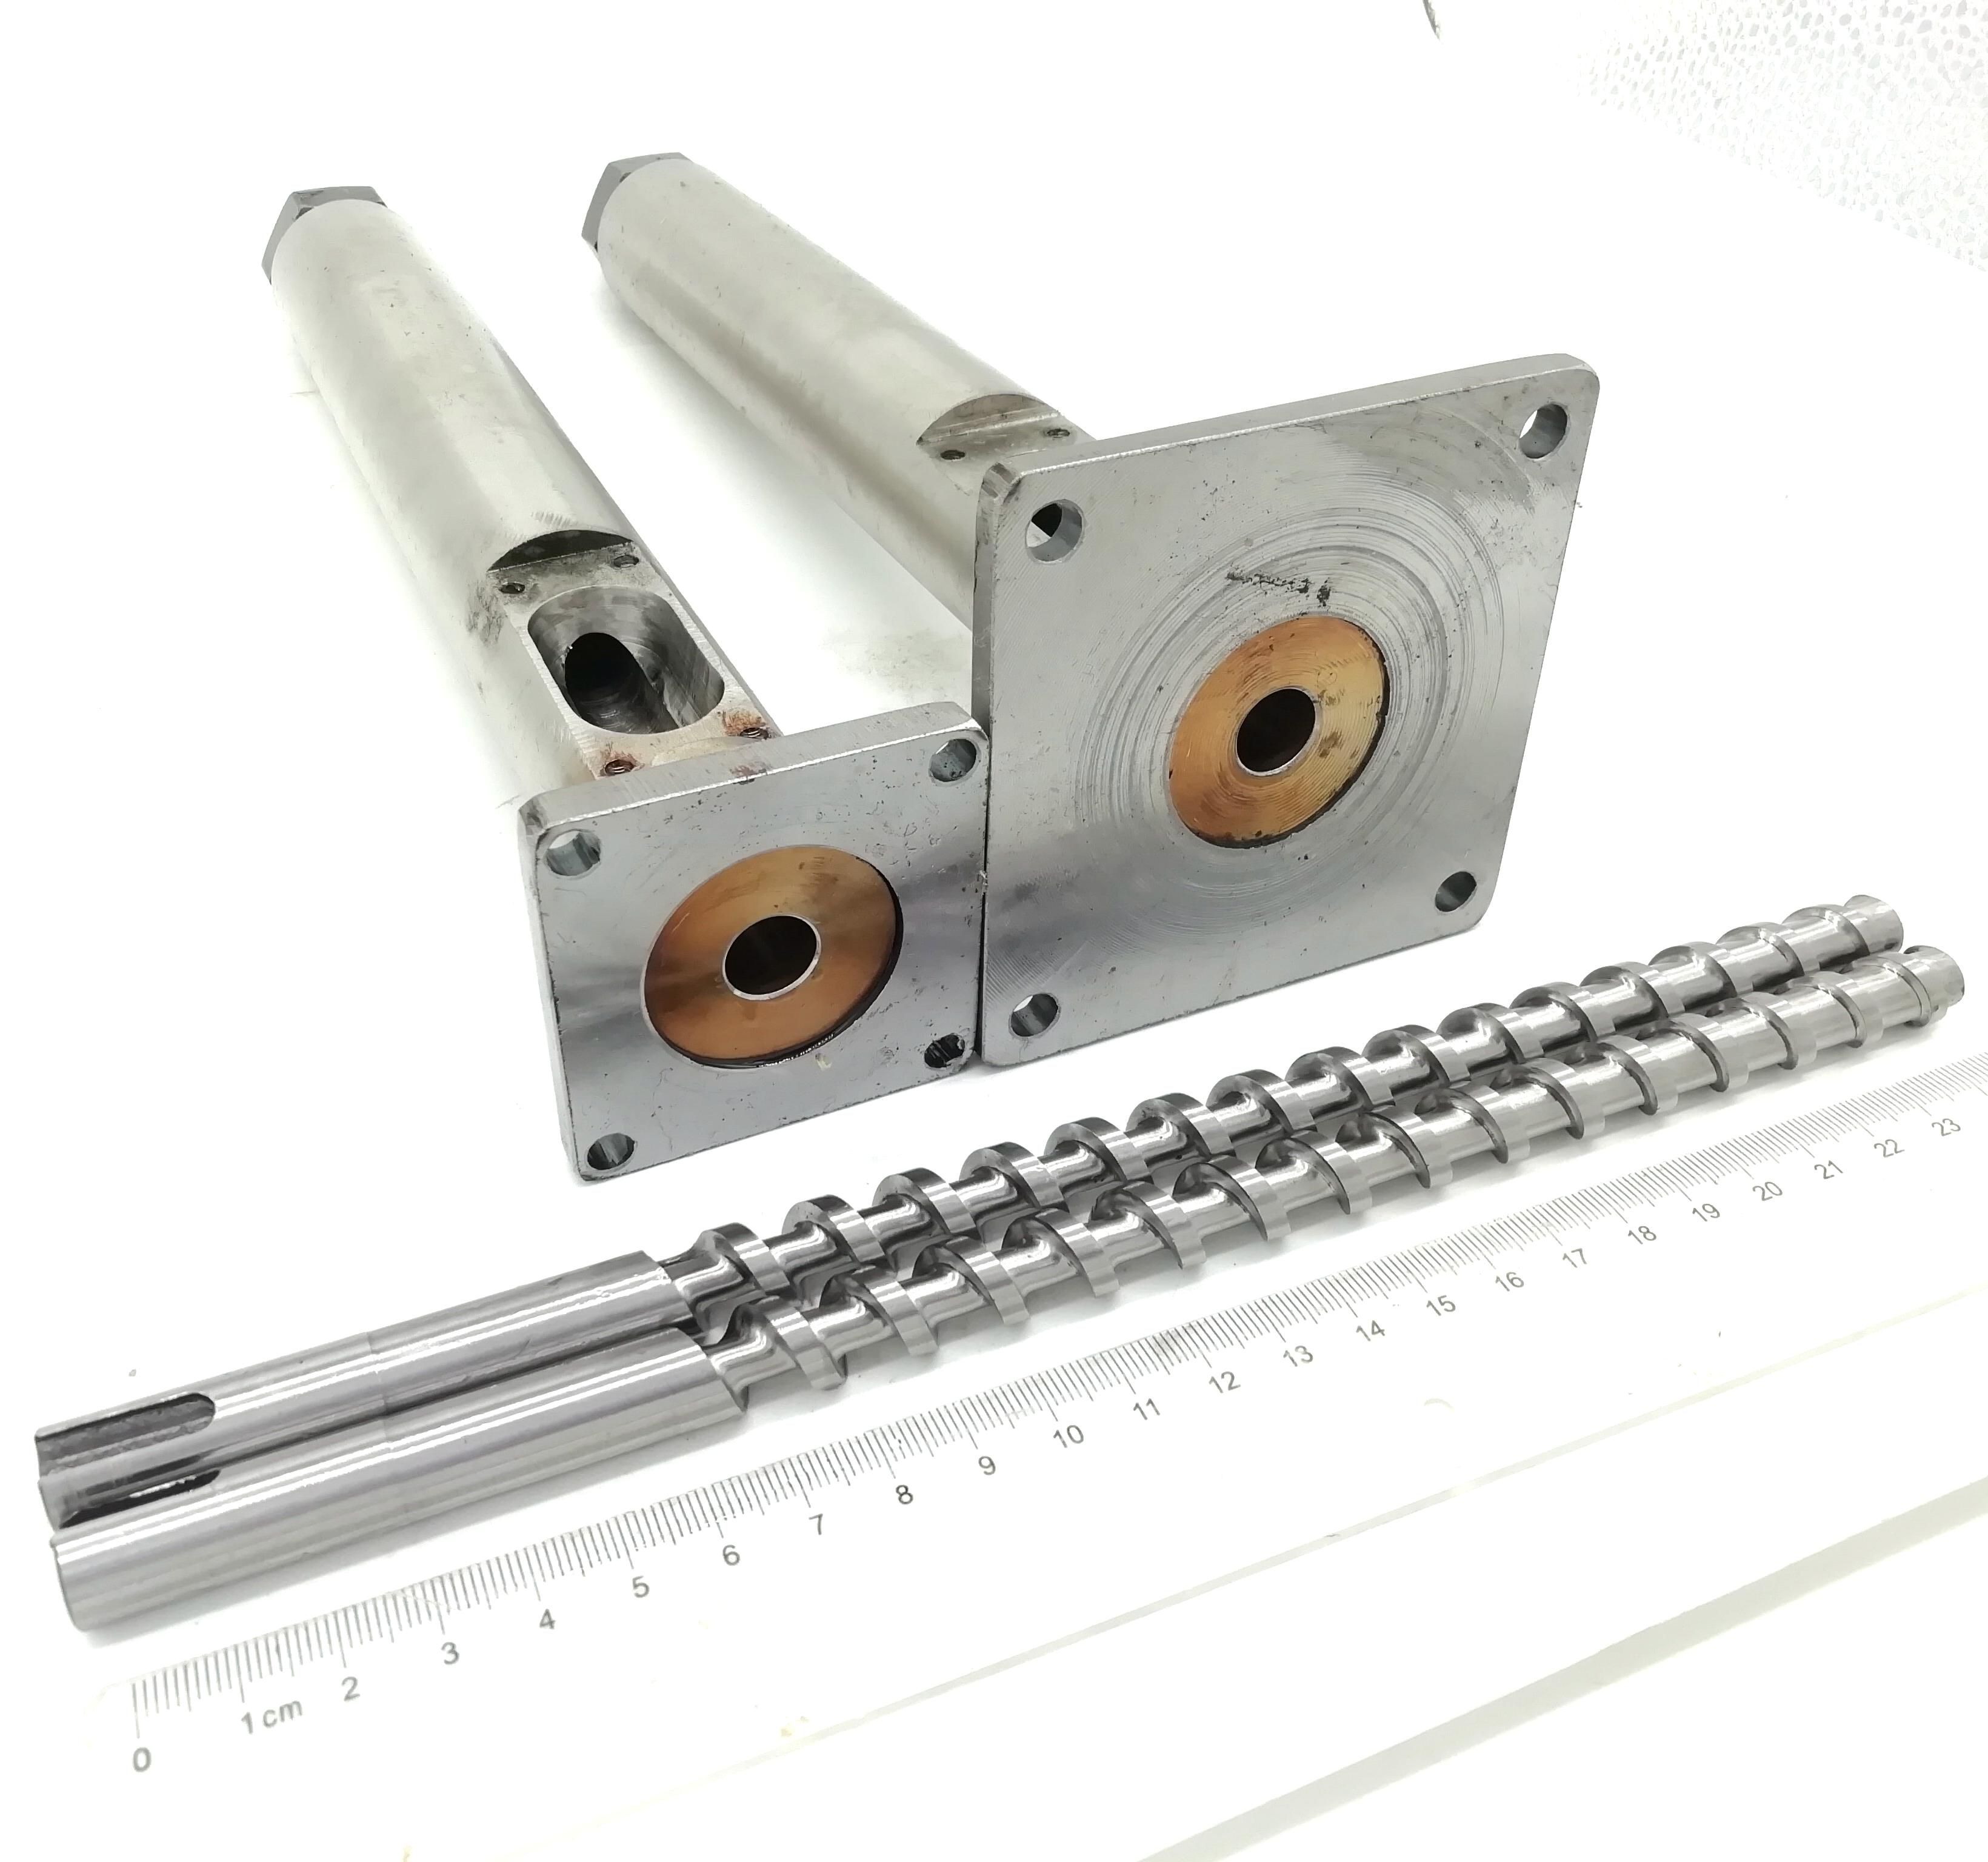 As Dia Set Nozzle Sold Band Barrel 35 With Extruder A Screw Heater 12mm 220V 5mm 75 And 1 40 3PCS 2